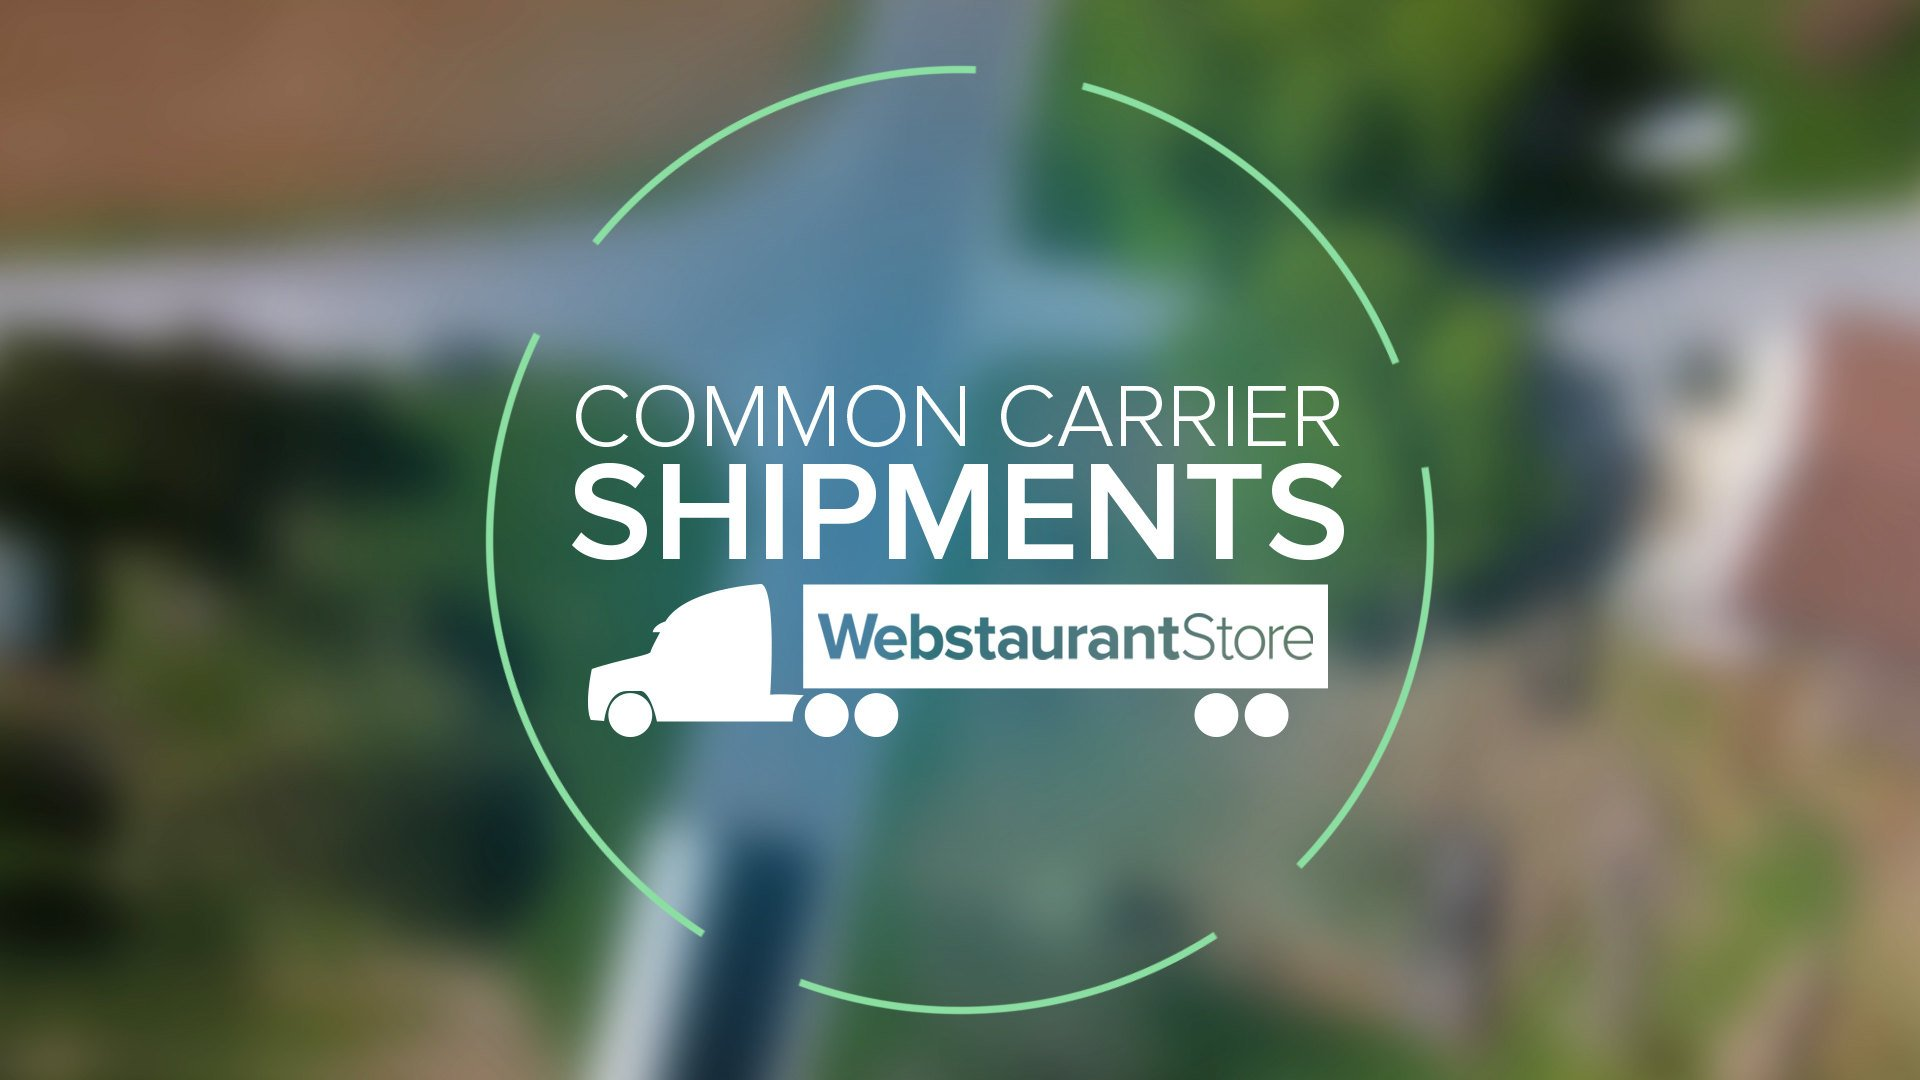 Common Carrier Shipments